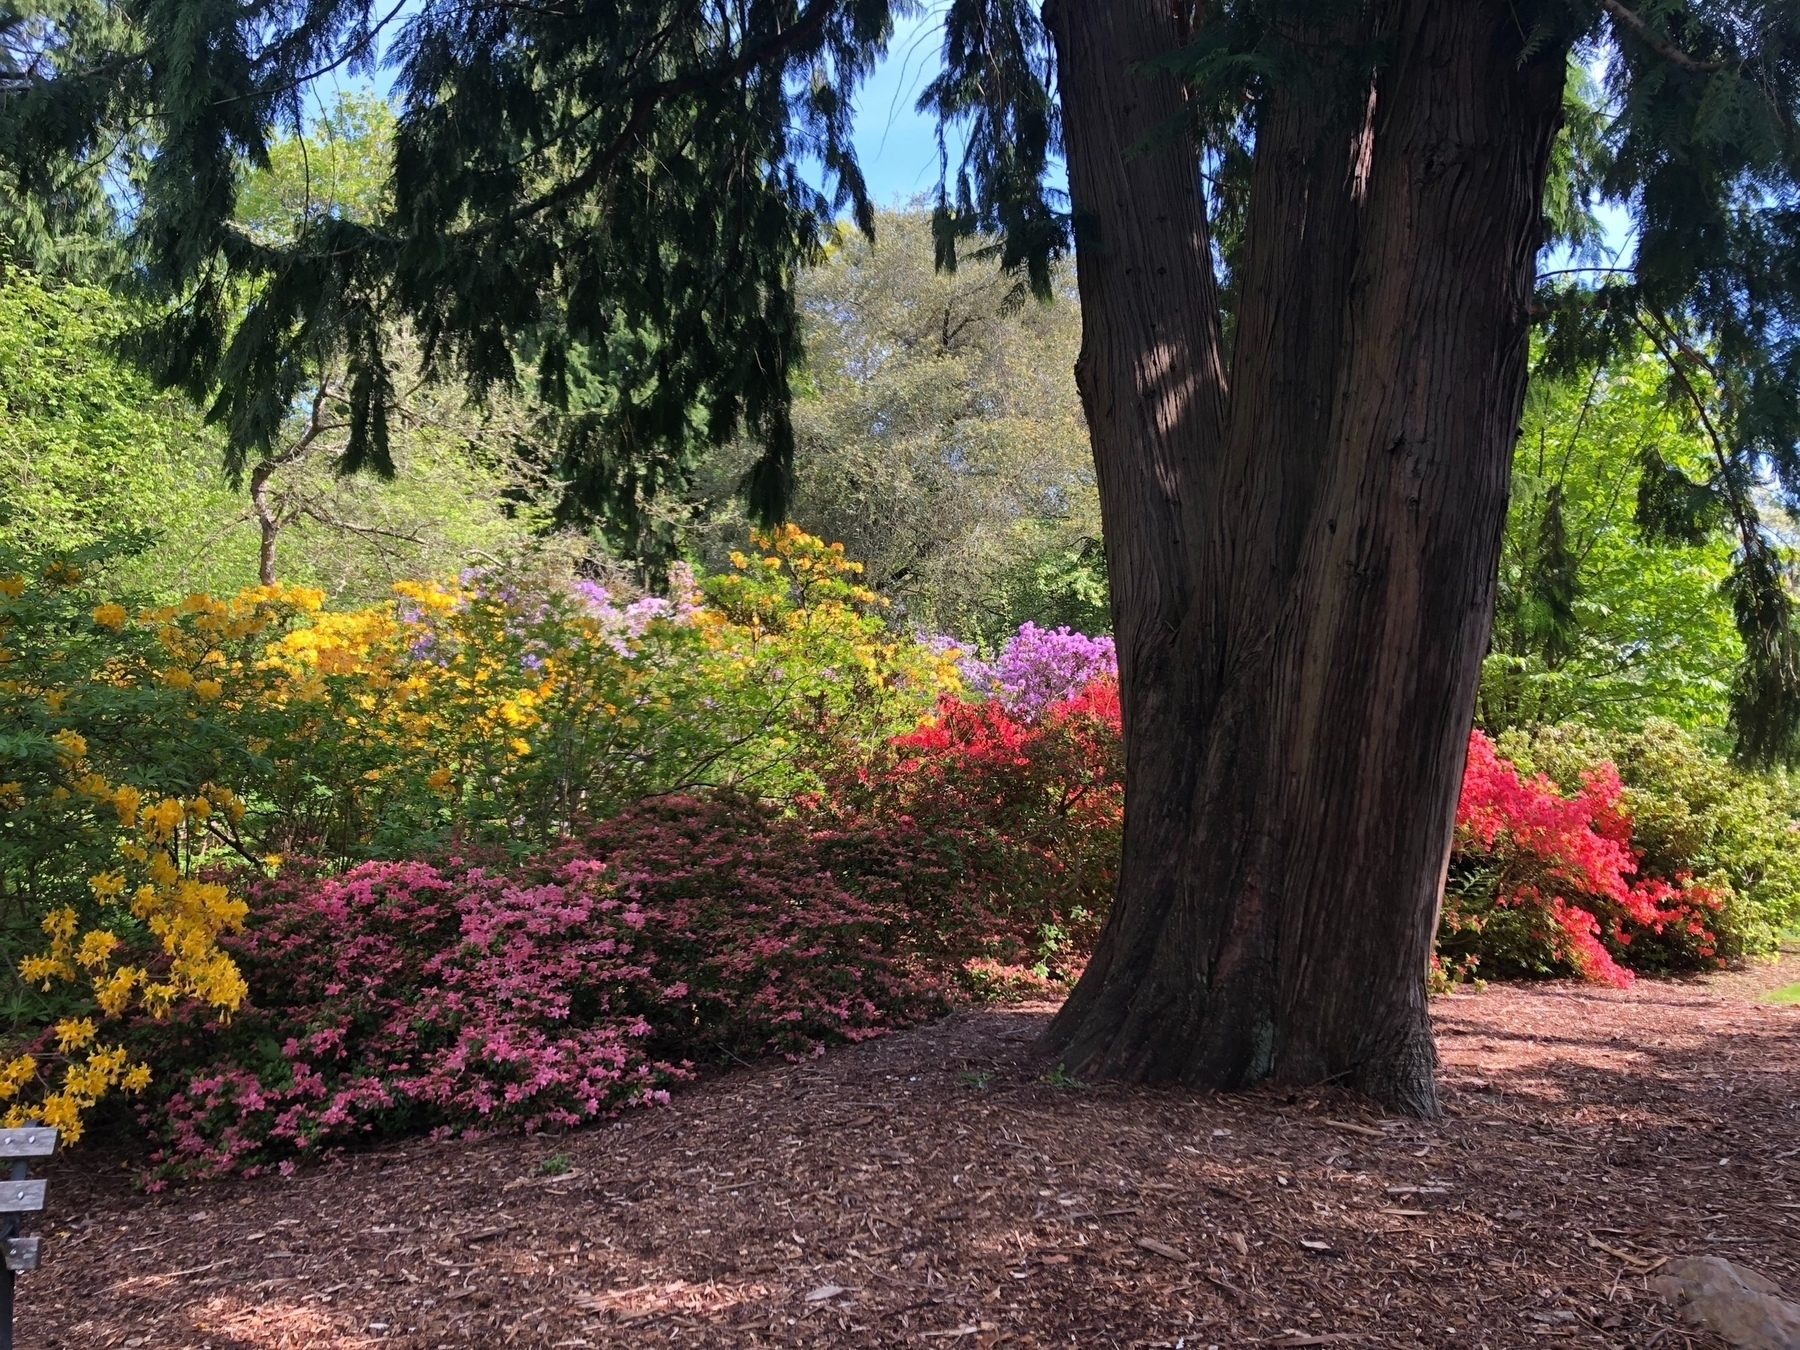 A mound of azalea bushes in yellow, red, pink, and purple